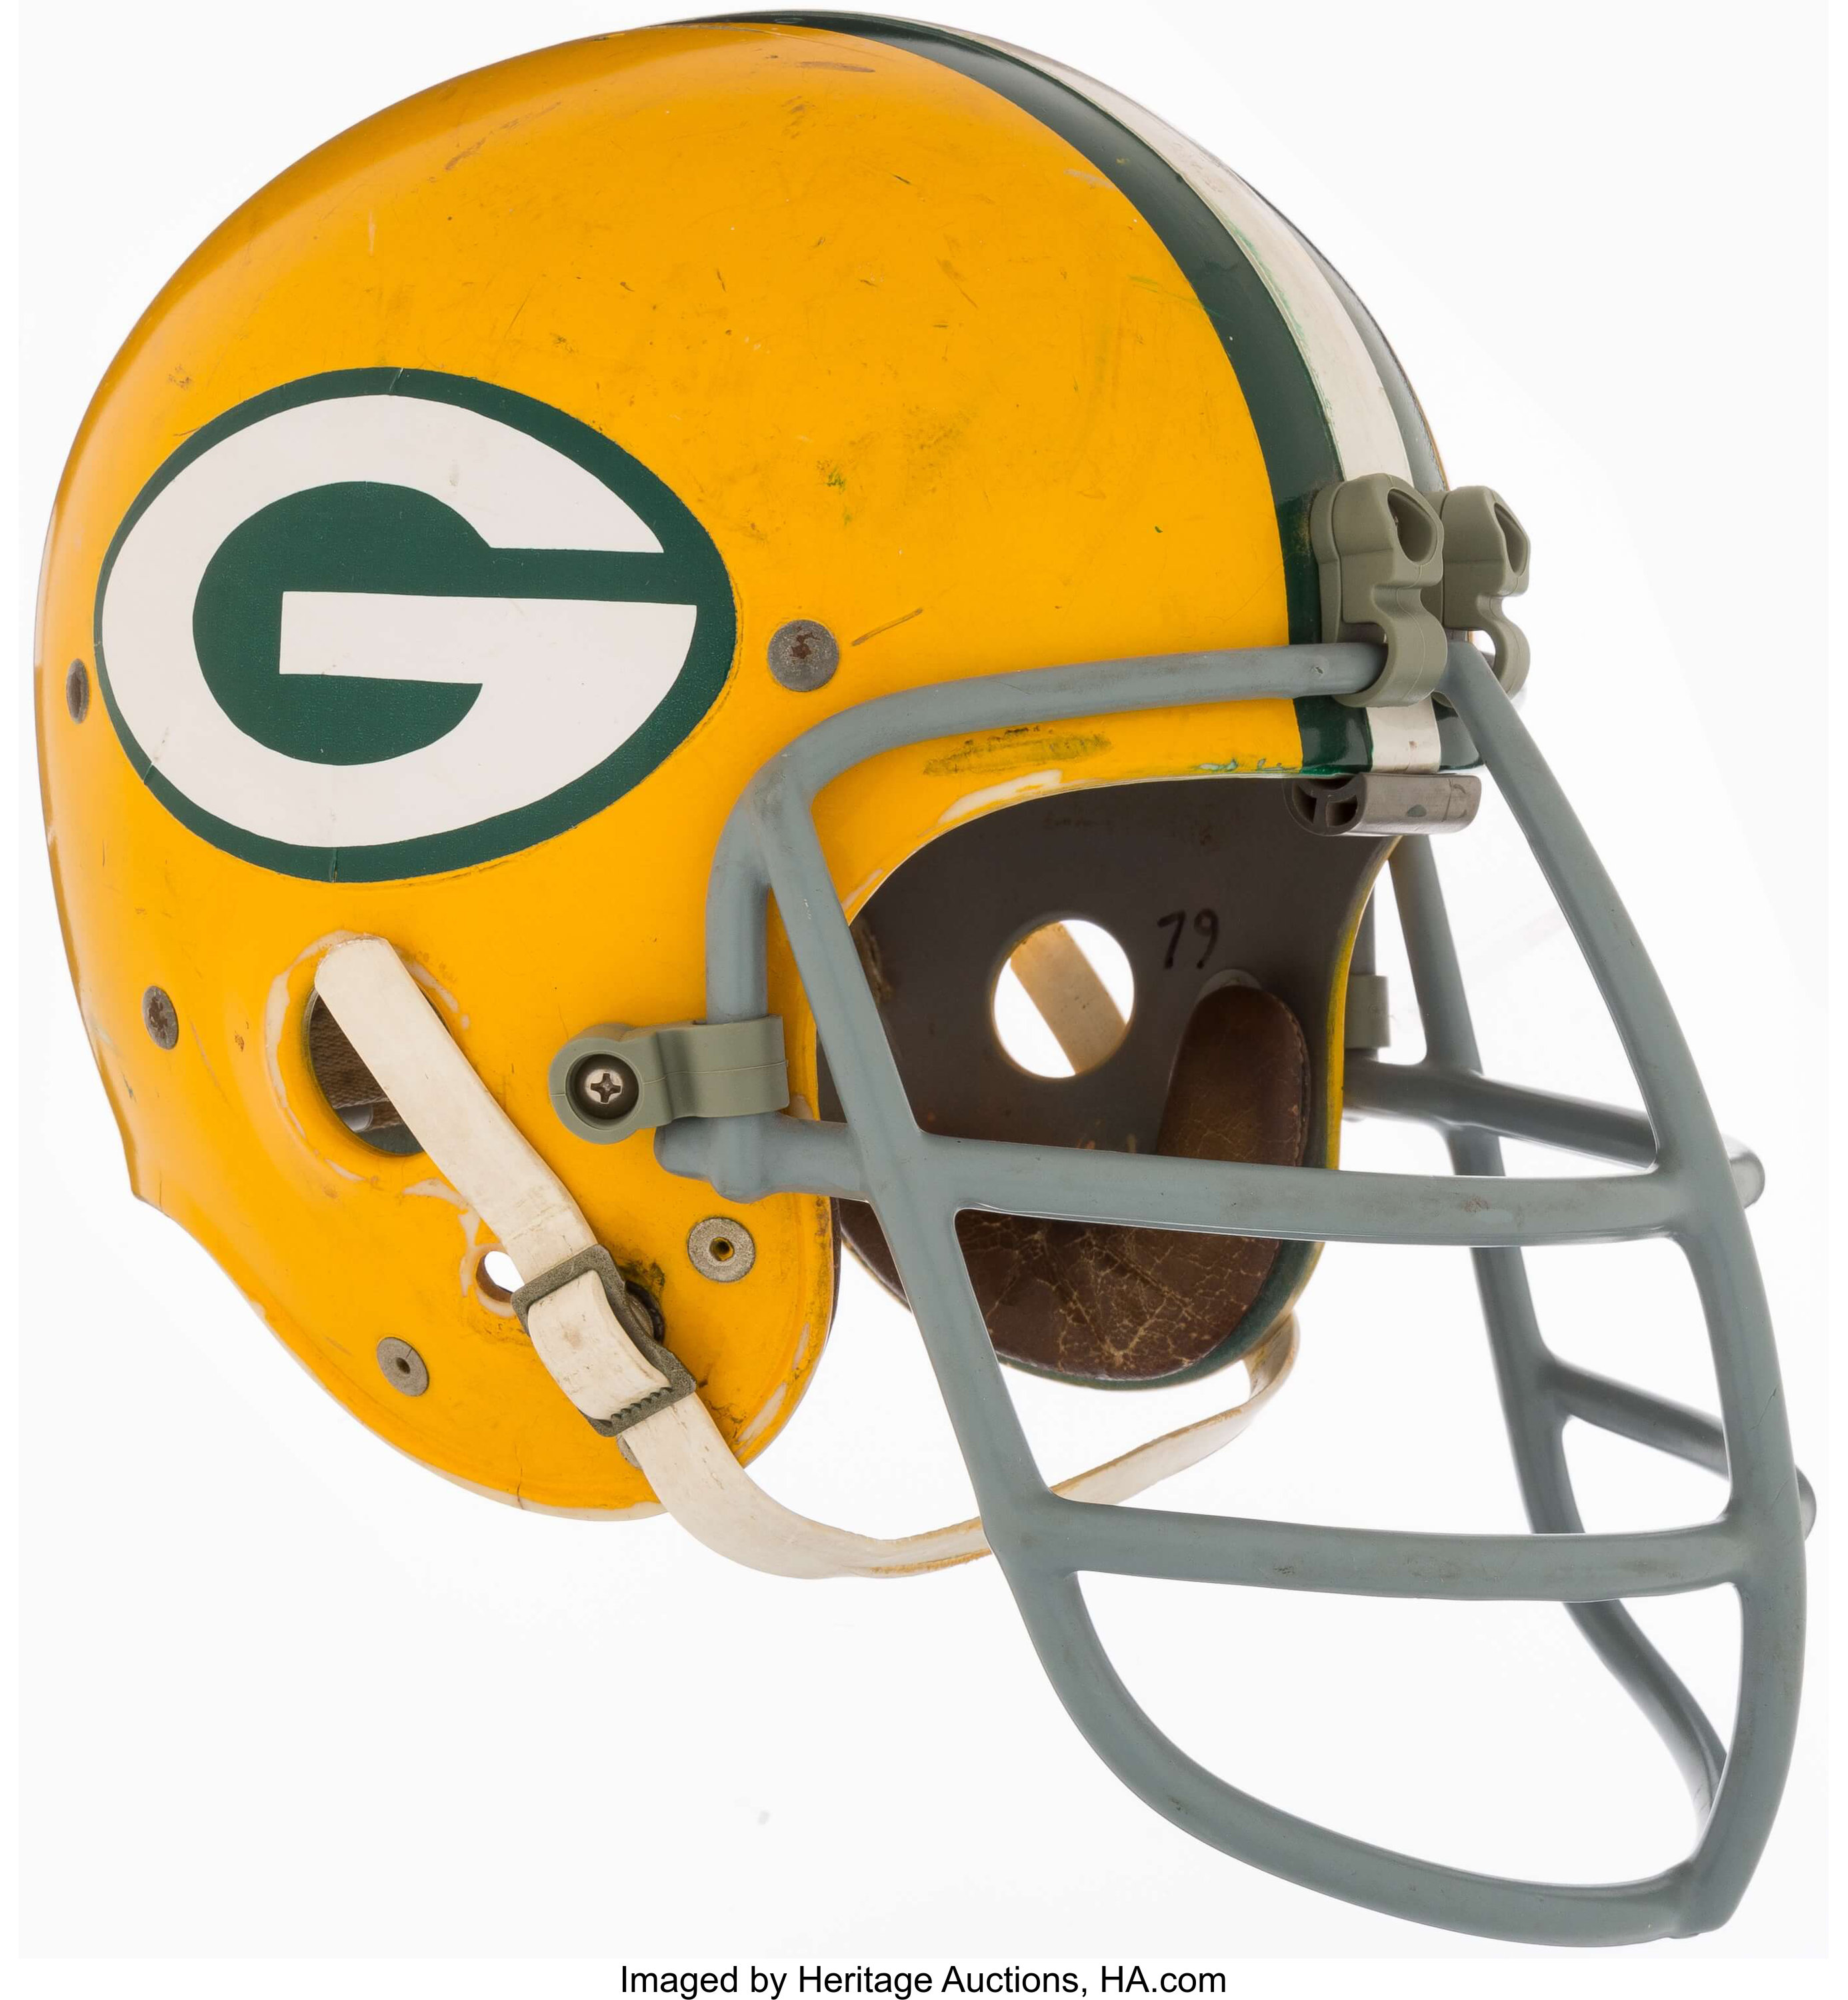 1960 S Green Bay Packers Vintage Helmet Football Collectibles Lot 43229 Heritage Auctions